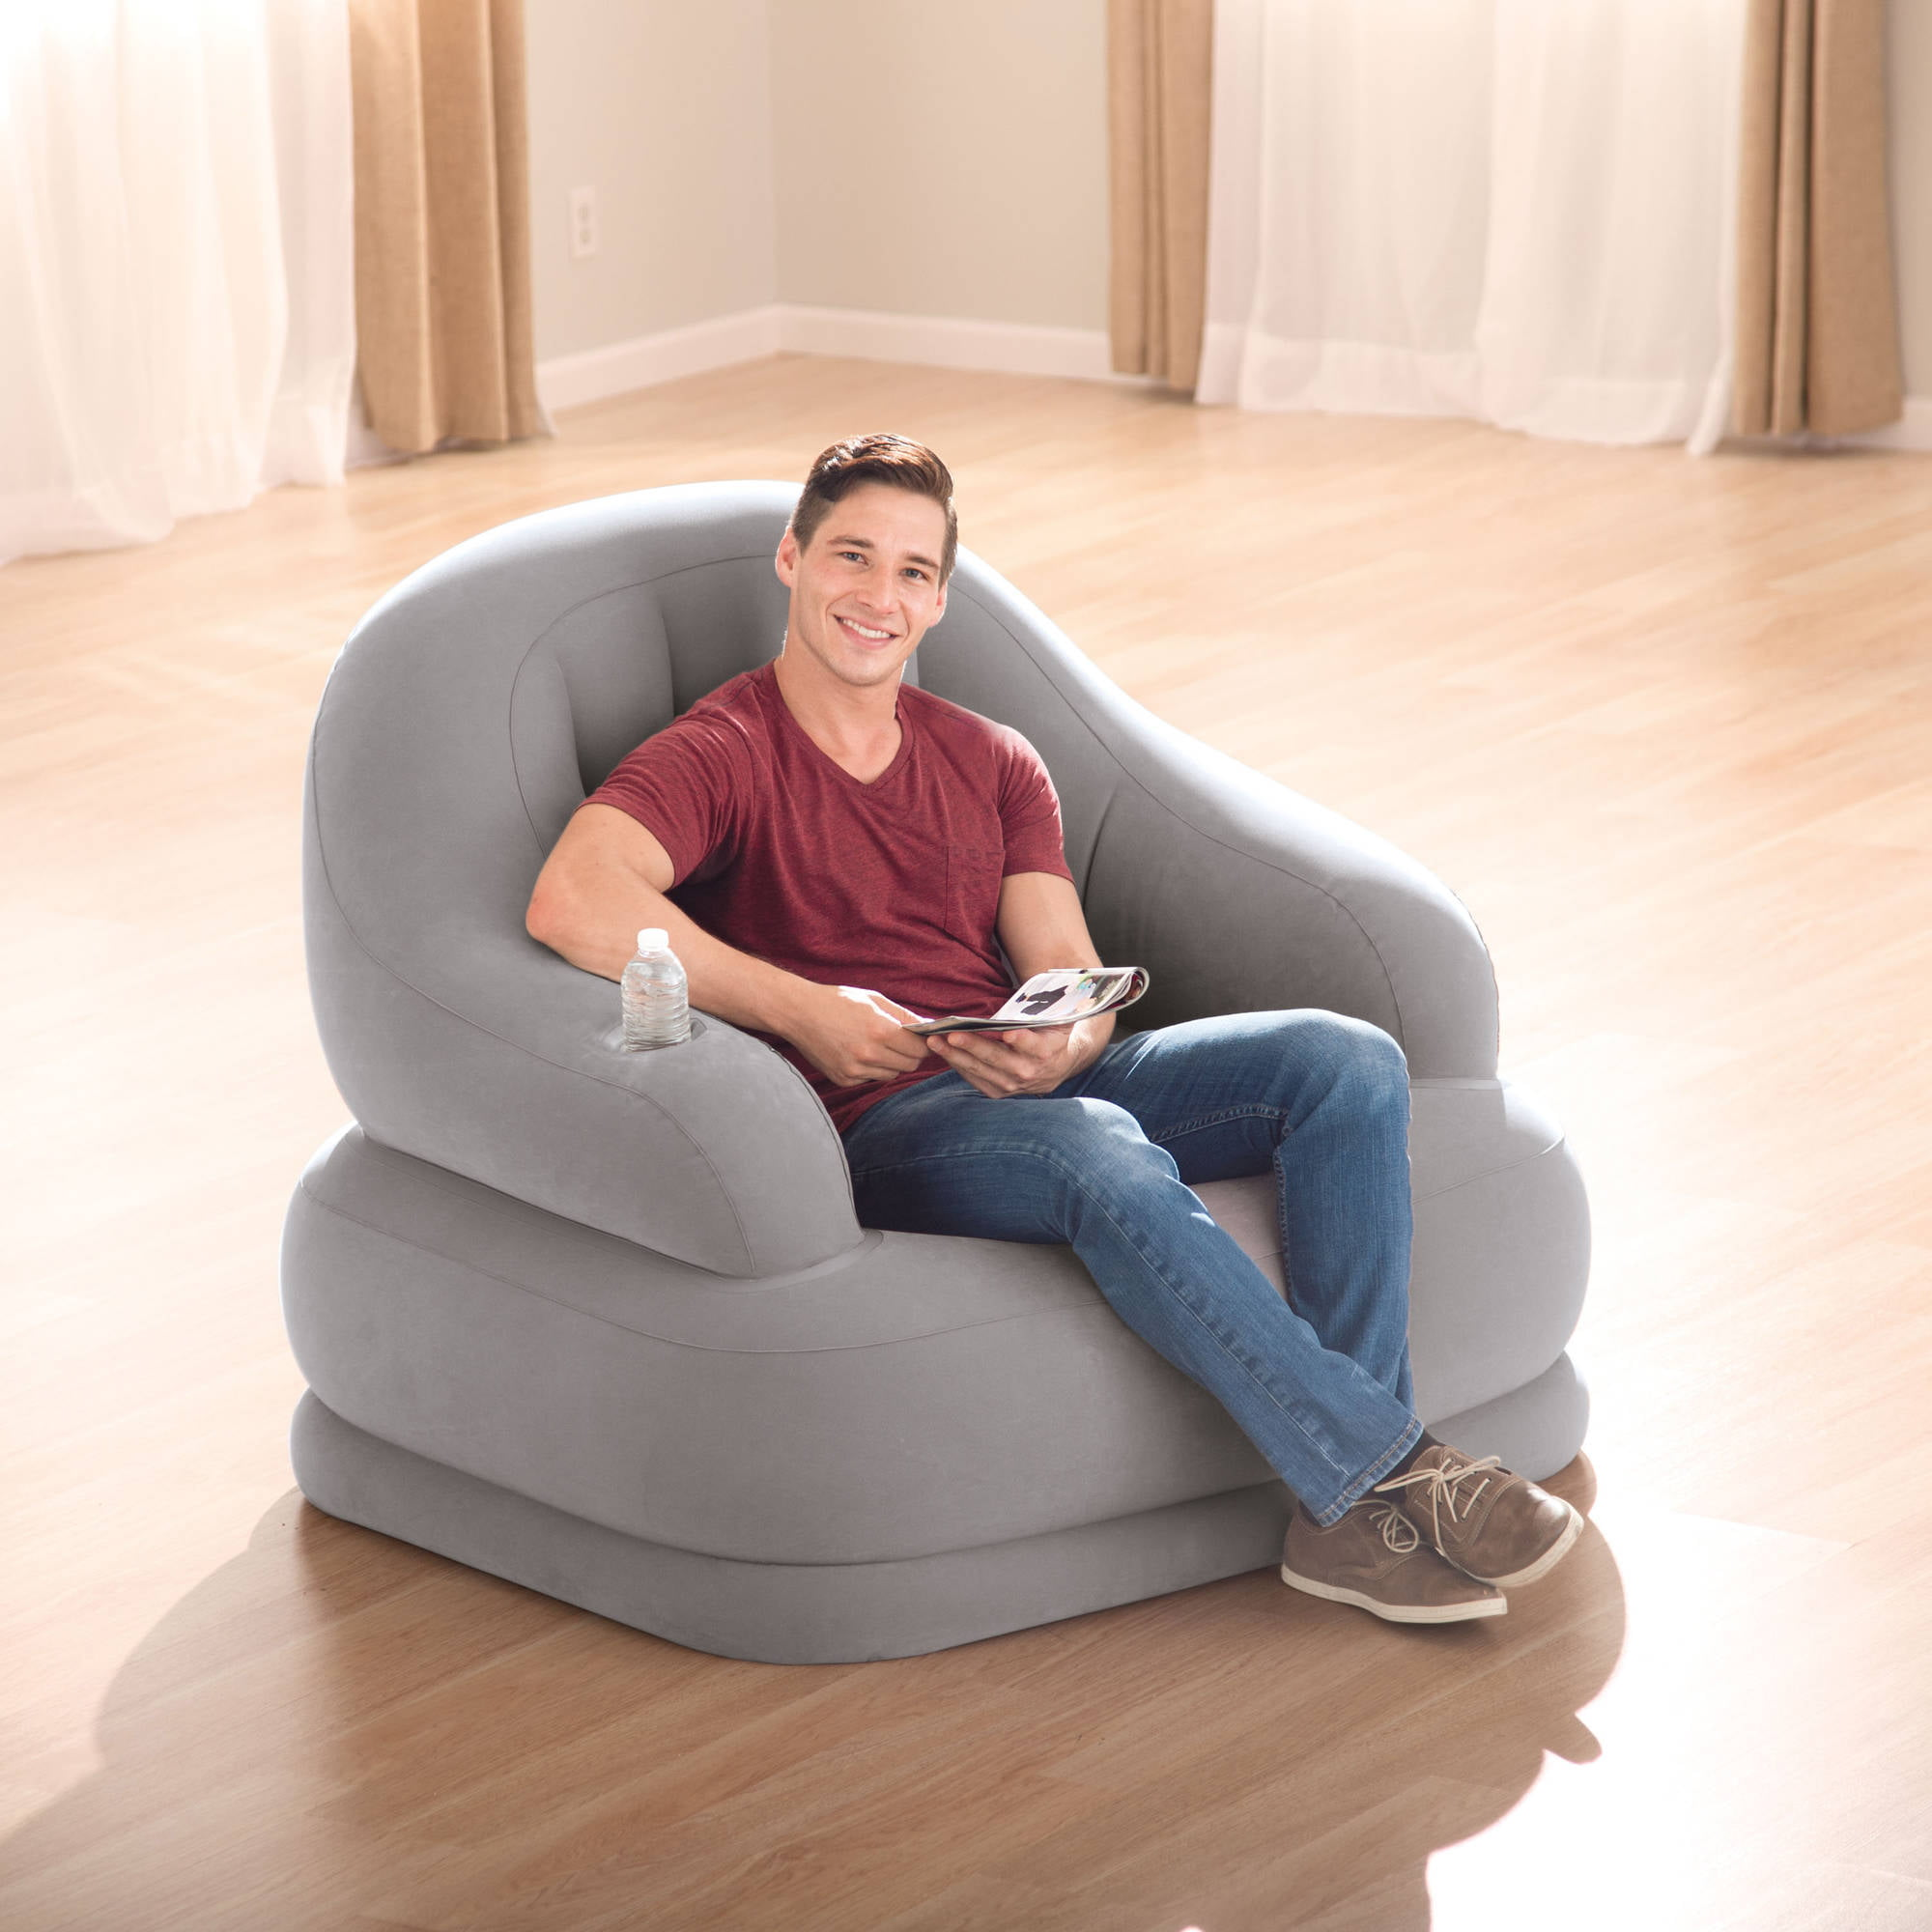 Intex Inflatable Chair Grey